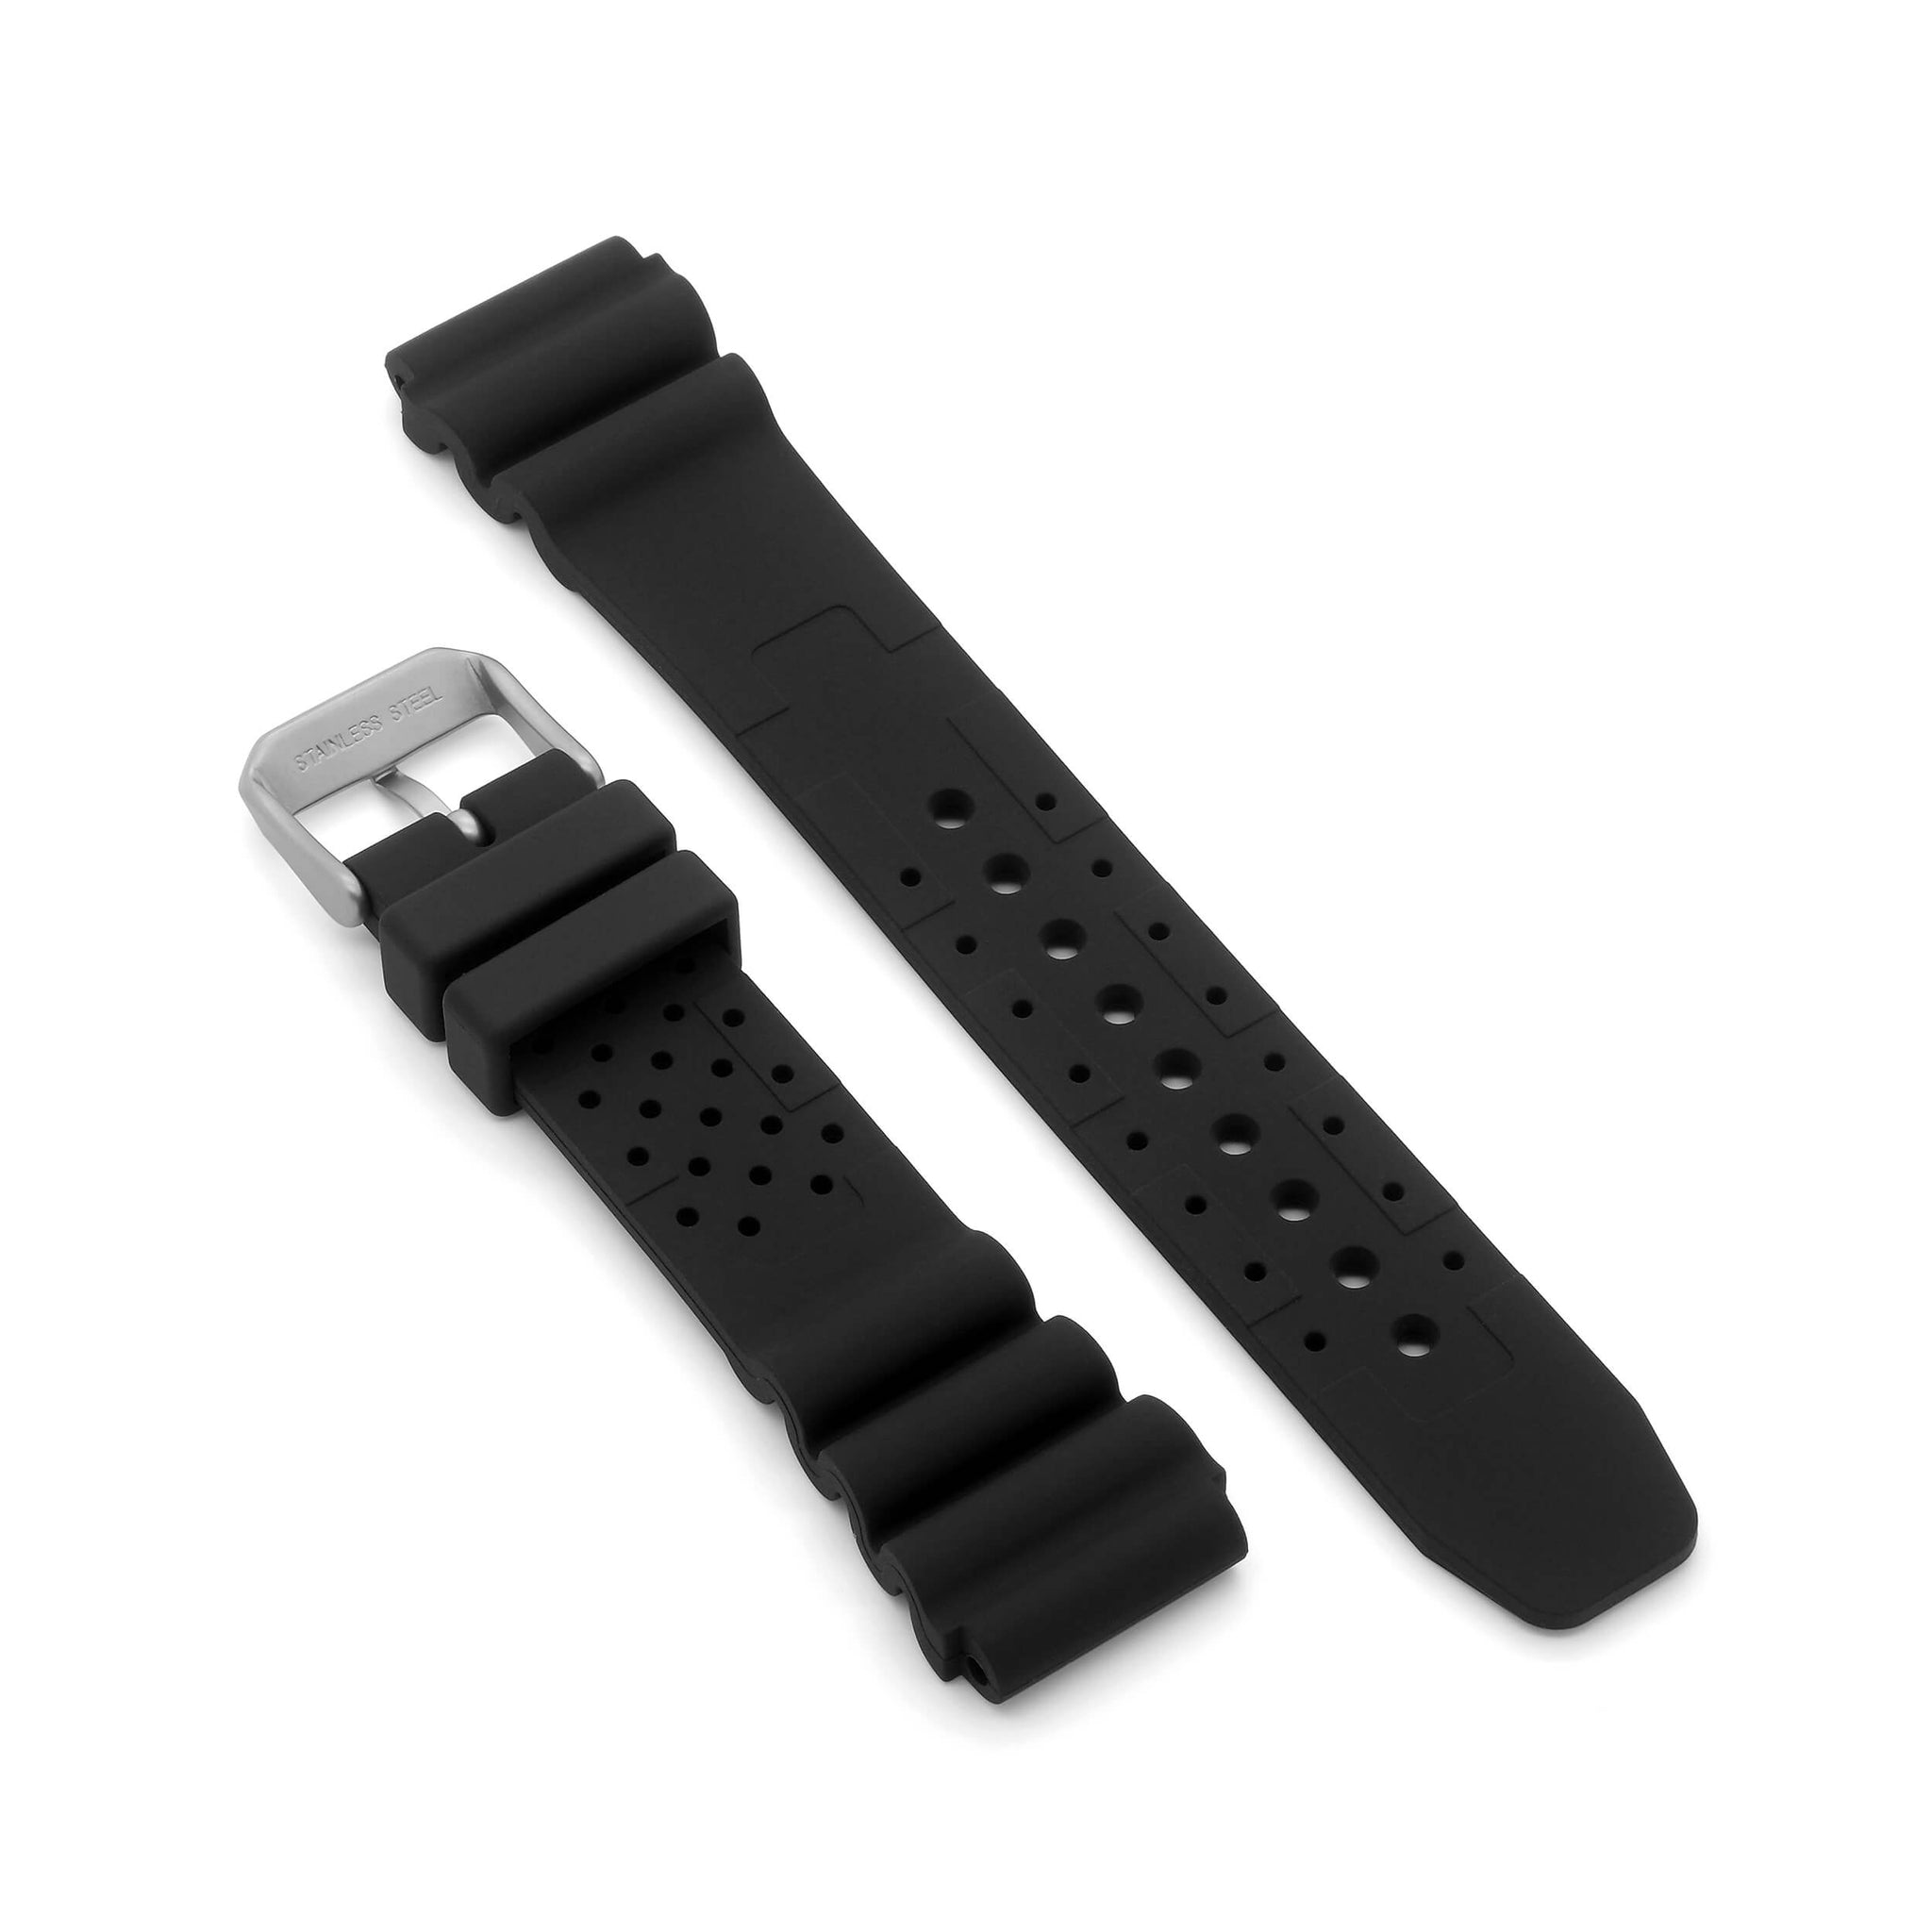 'N.D. Limits' Rubber Divers Watch Strap